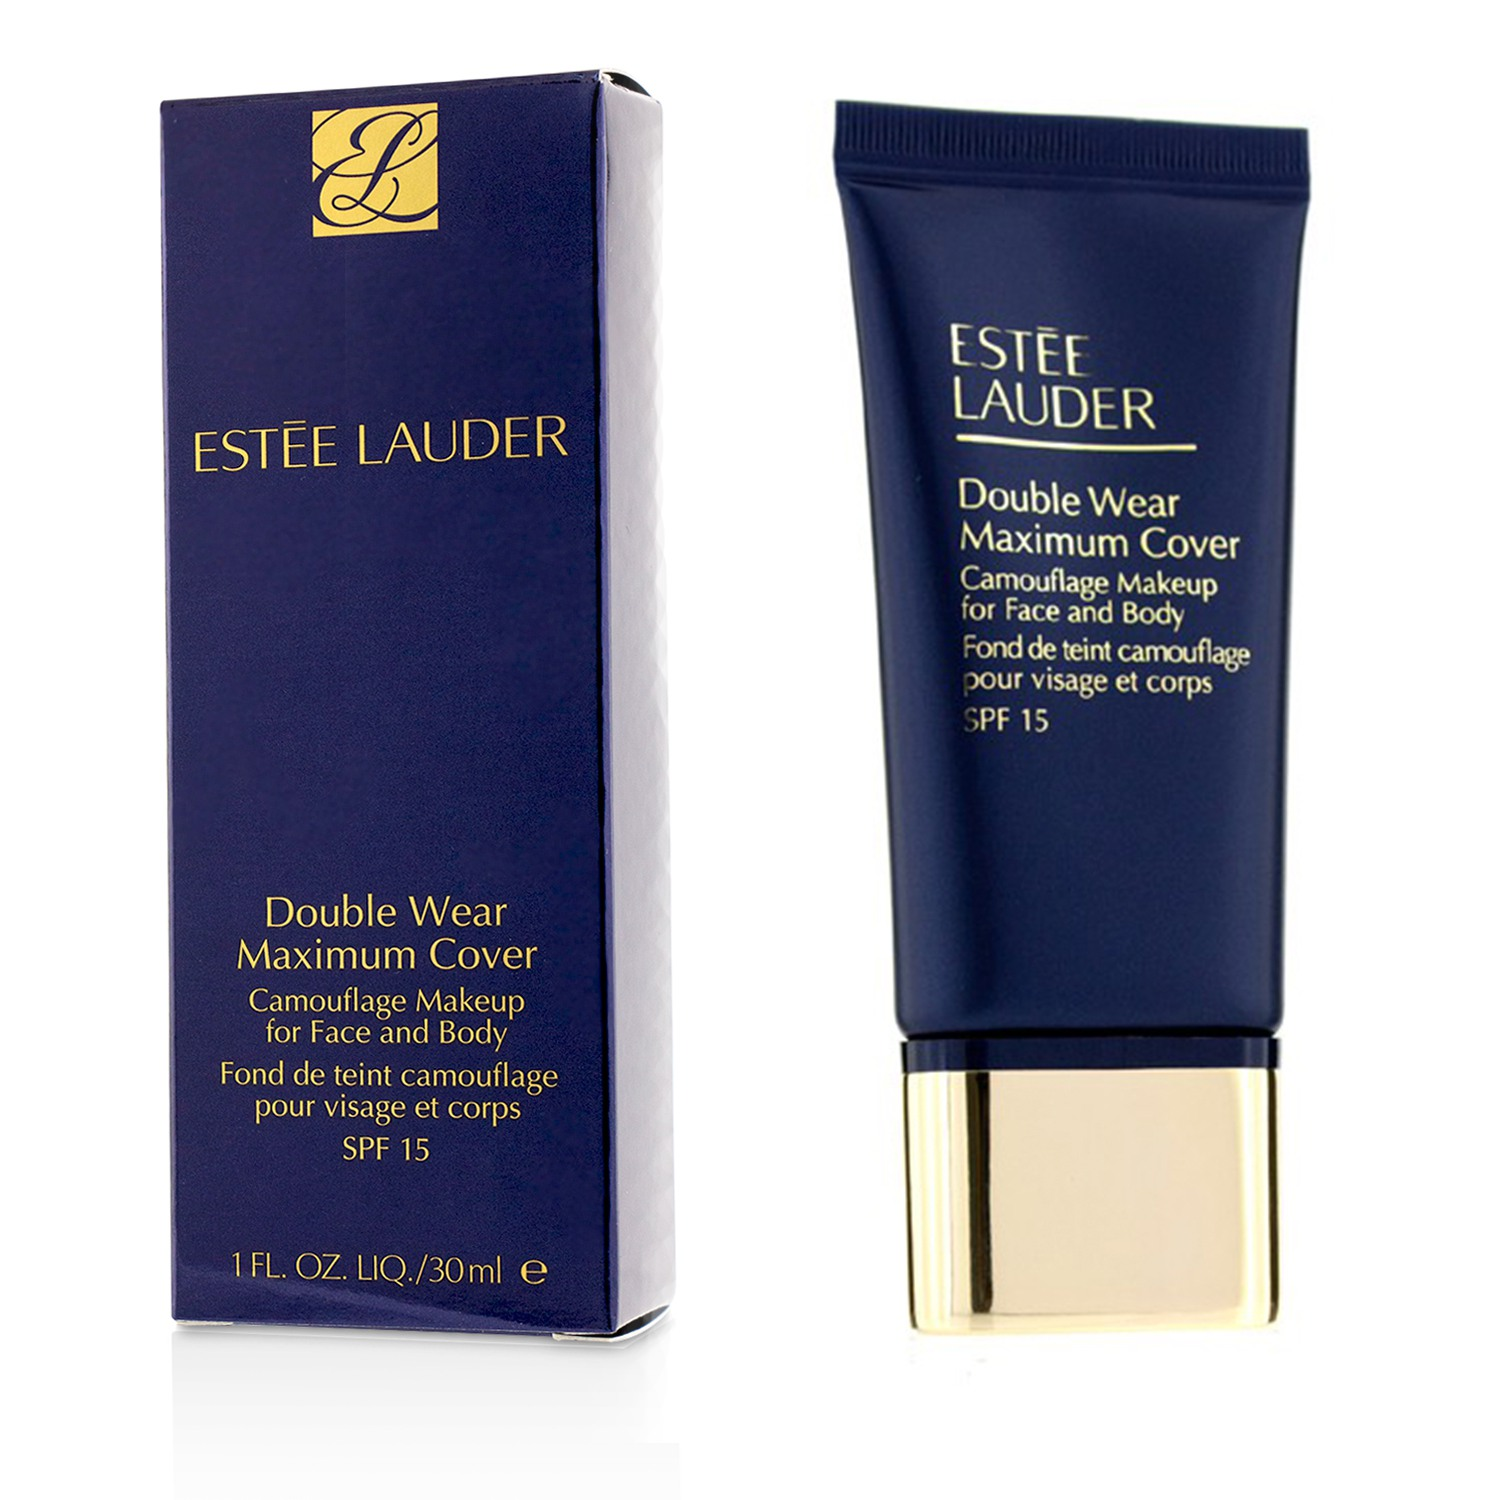 Double Wear - Maximum Cover Camouflage Makeup for Face and Body SPF 15 - 3C4 Medium/Deep